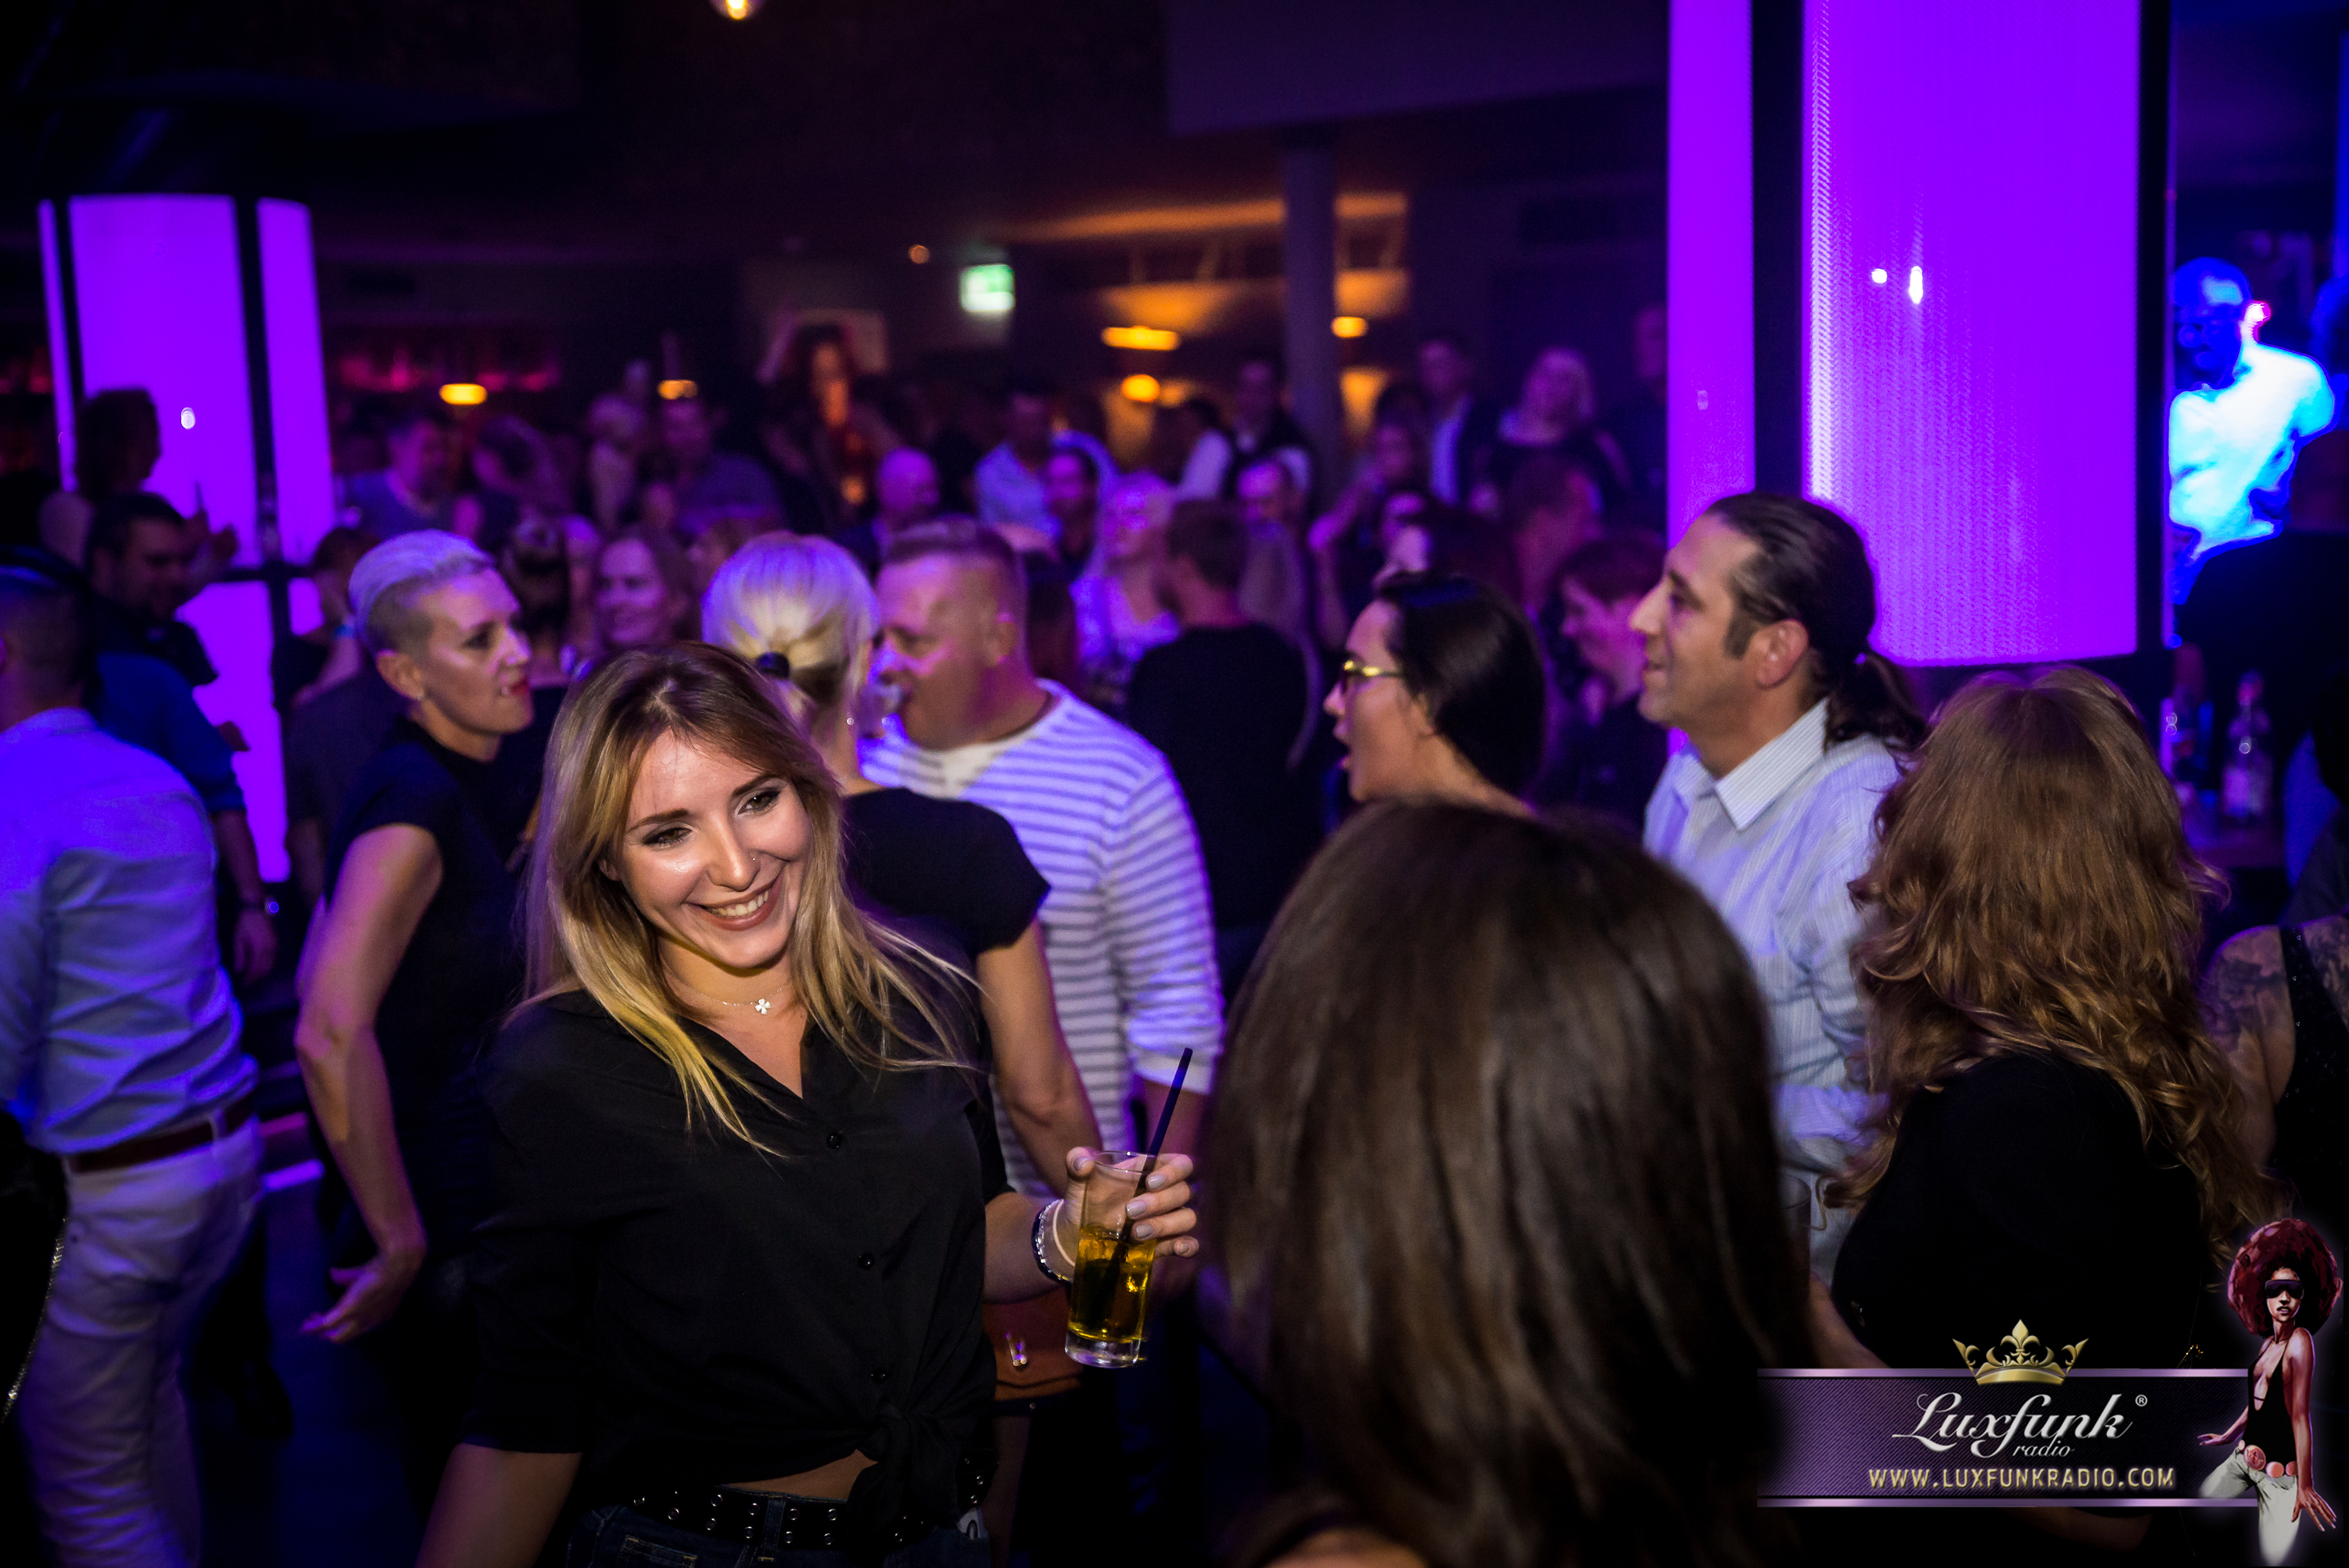 luxfunk-radio-funky-party-20191108-lock-budapest-1214